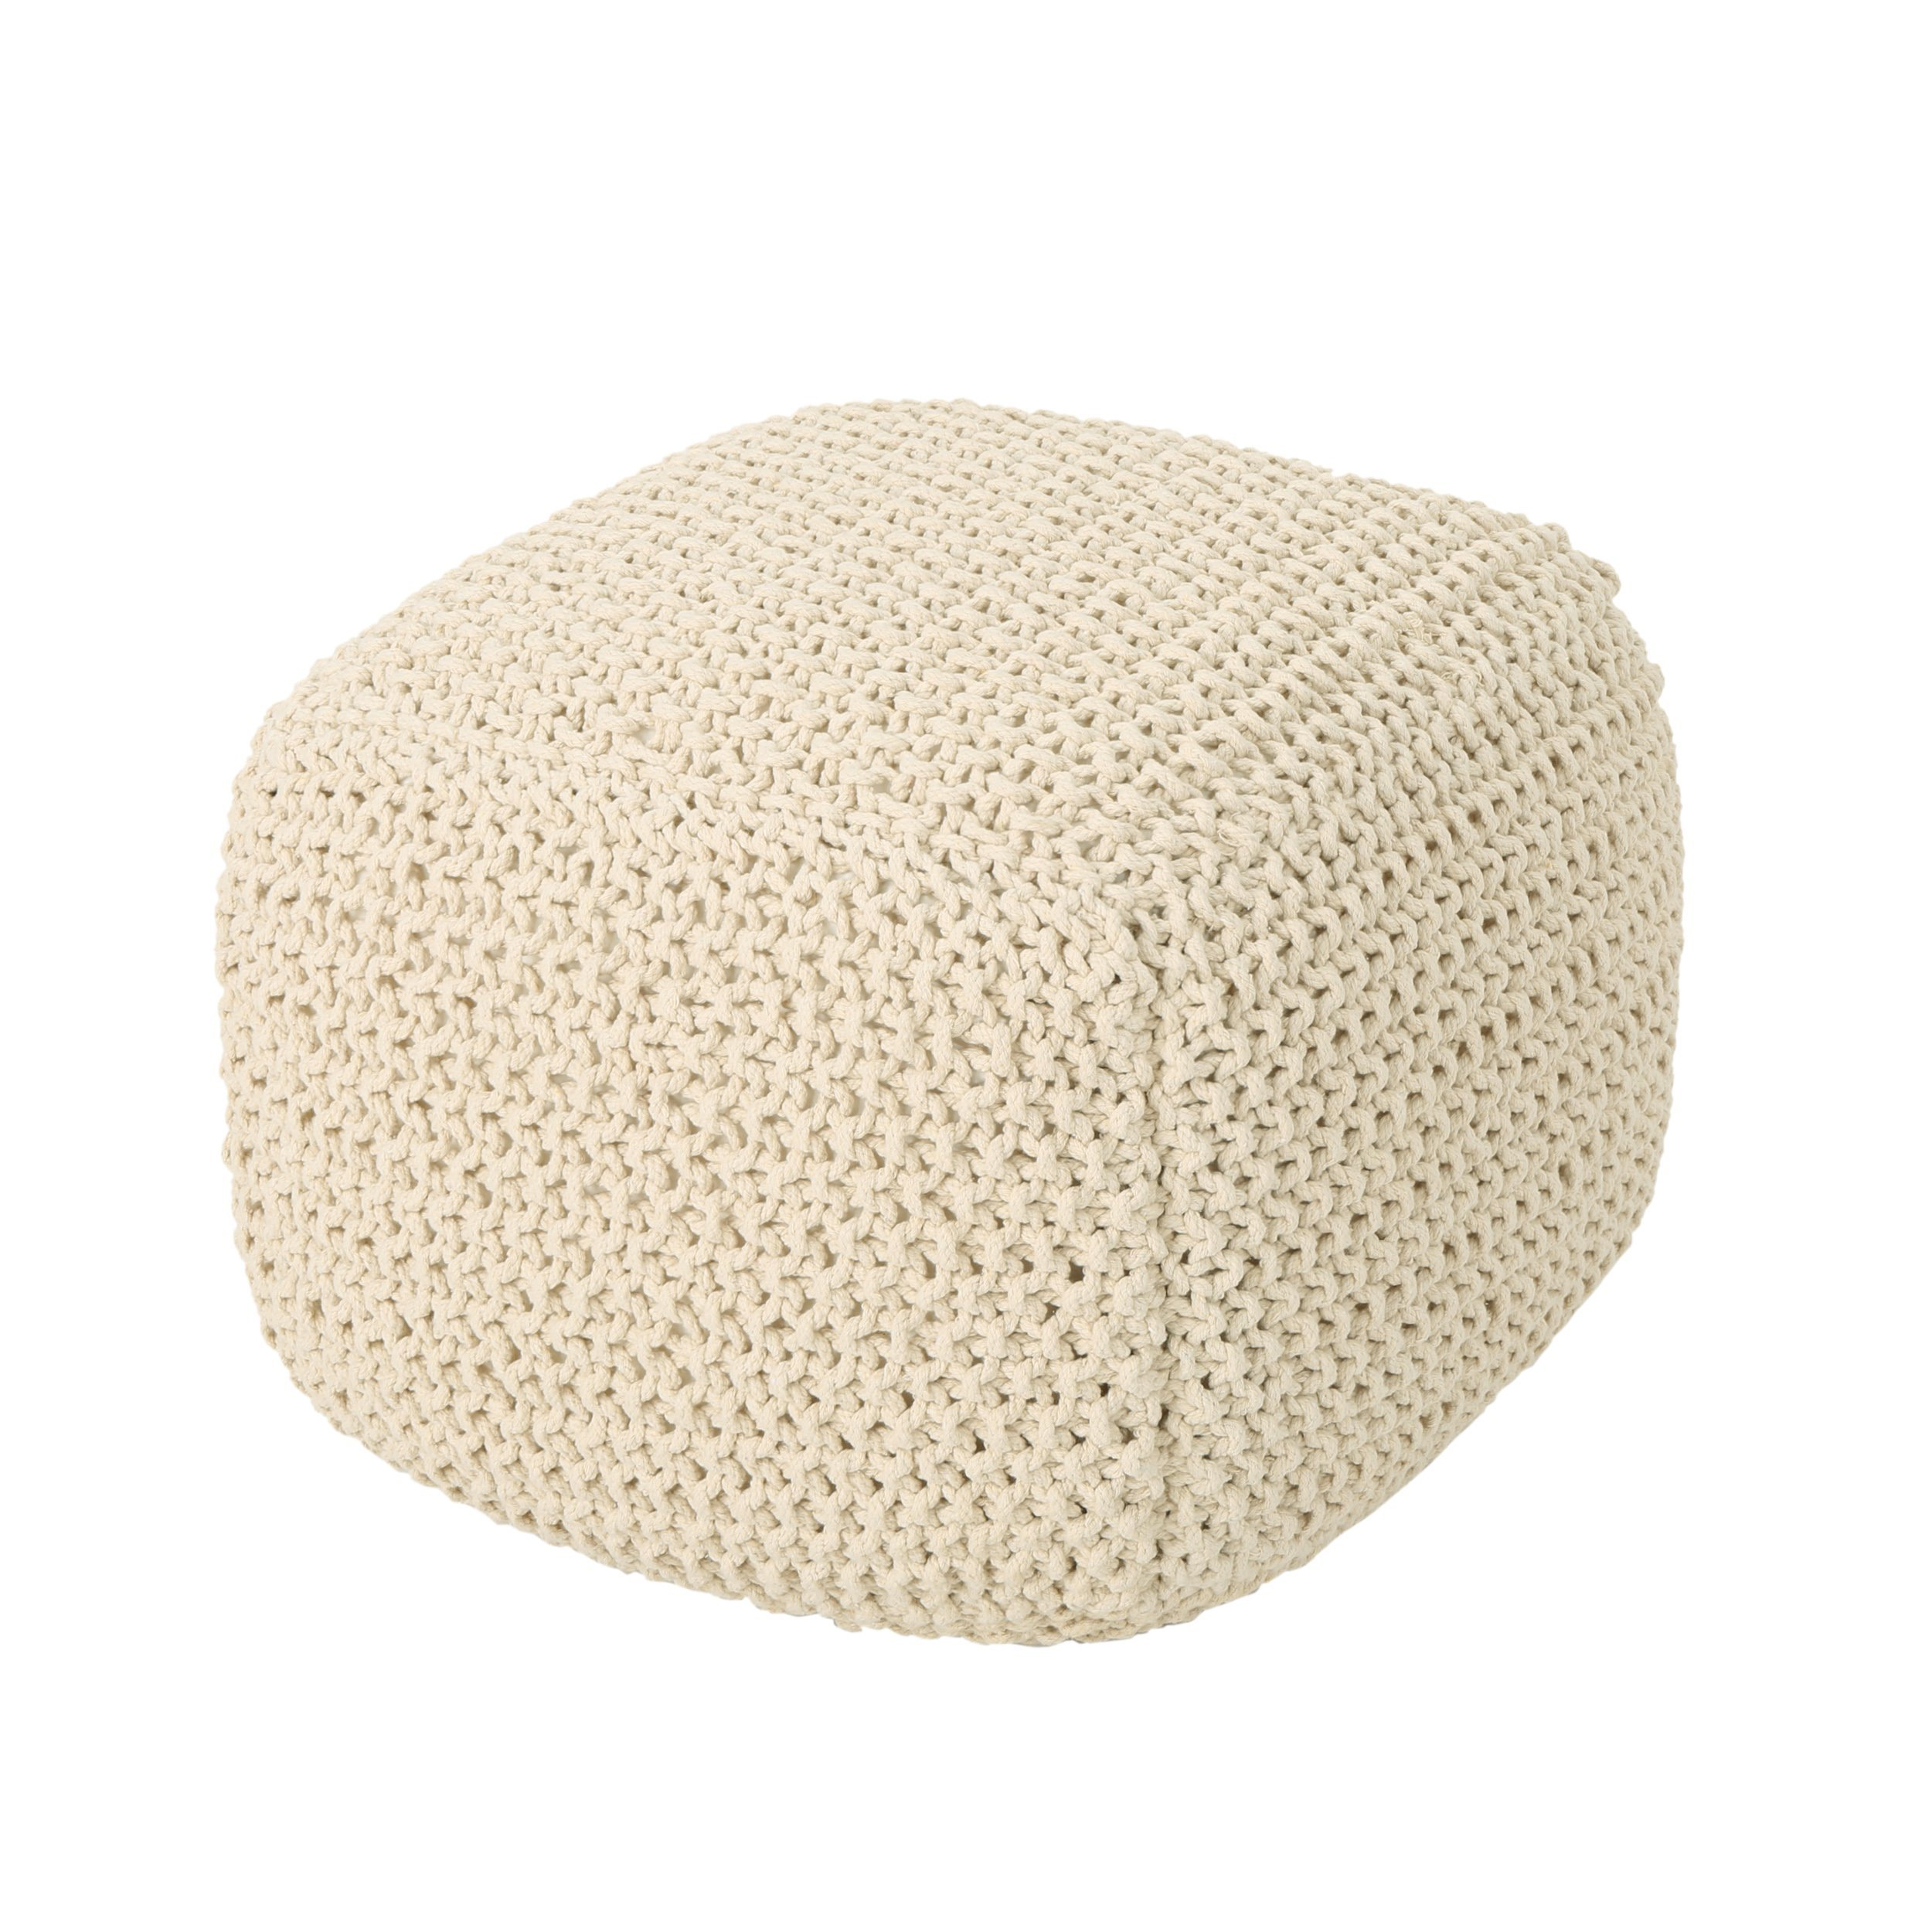 Knox Knitted Cotton Pouf, Beige